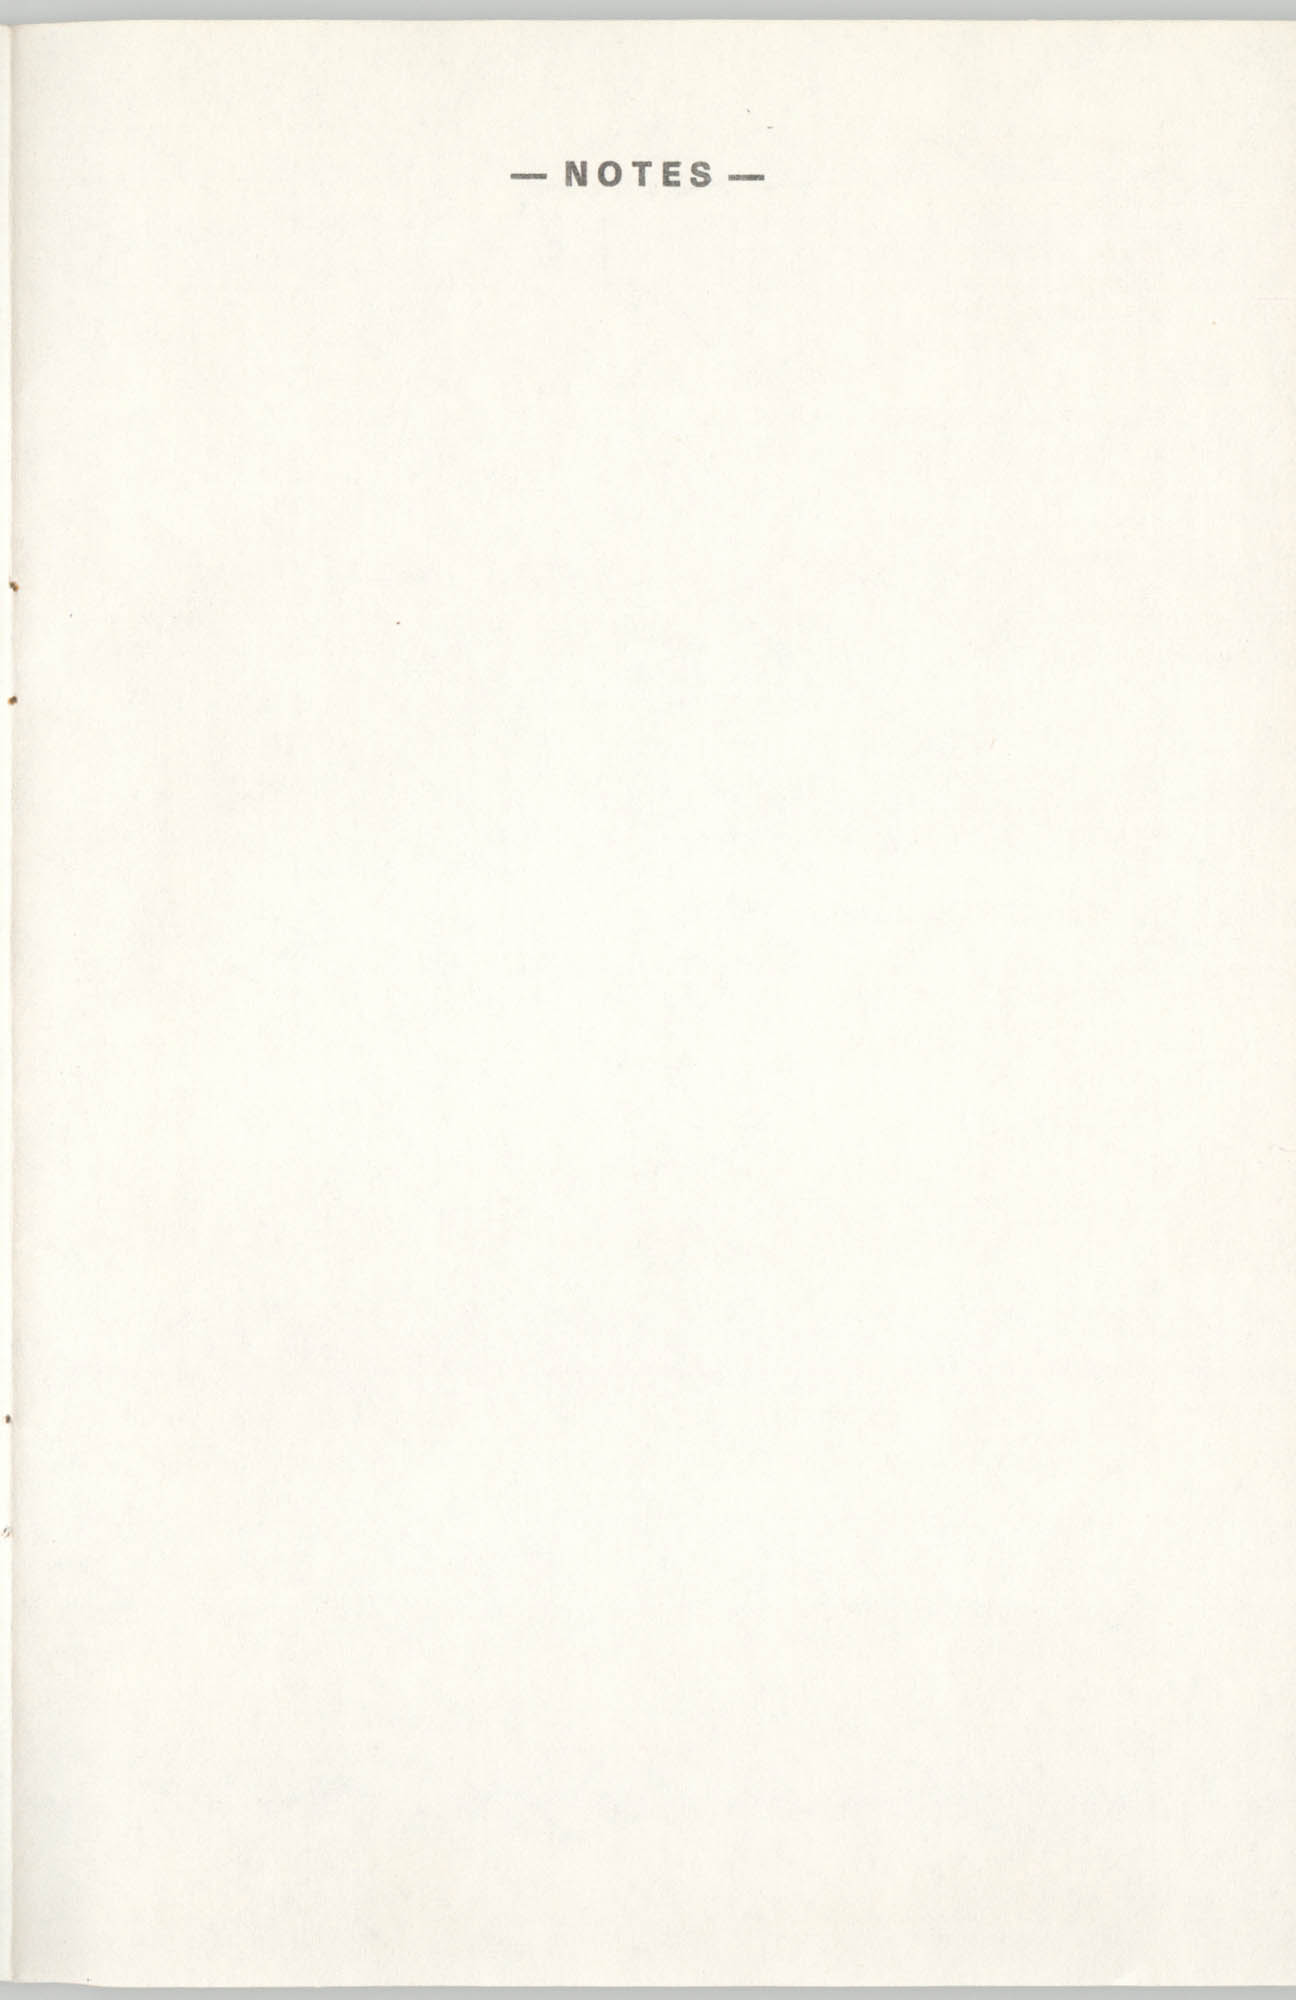 State of South Carolina Directory of Registered Social Workers, 1977, Page 20